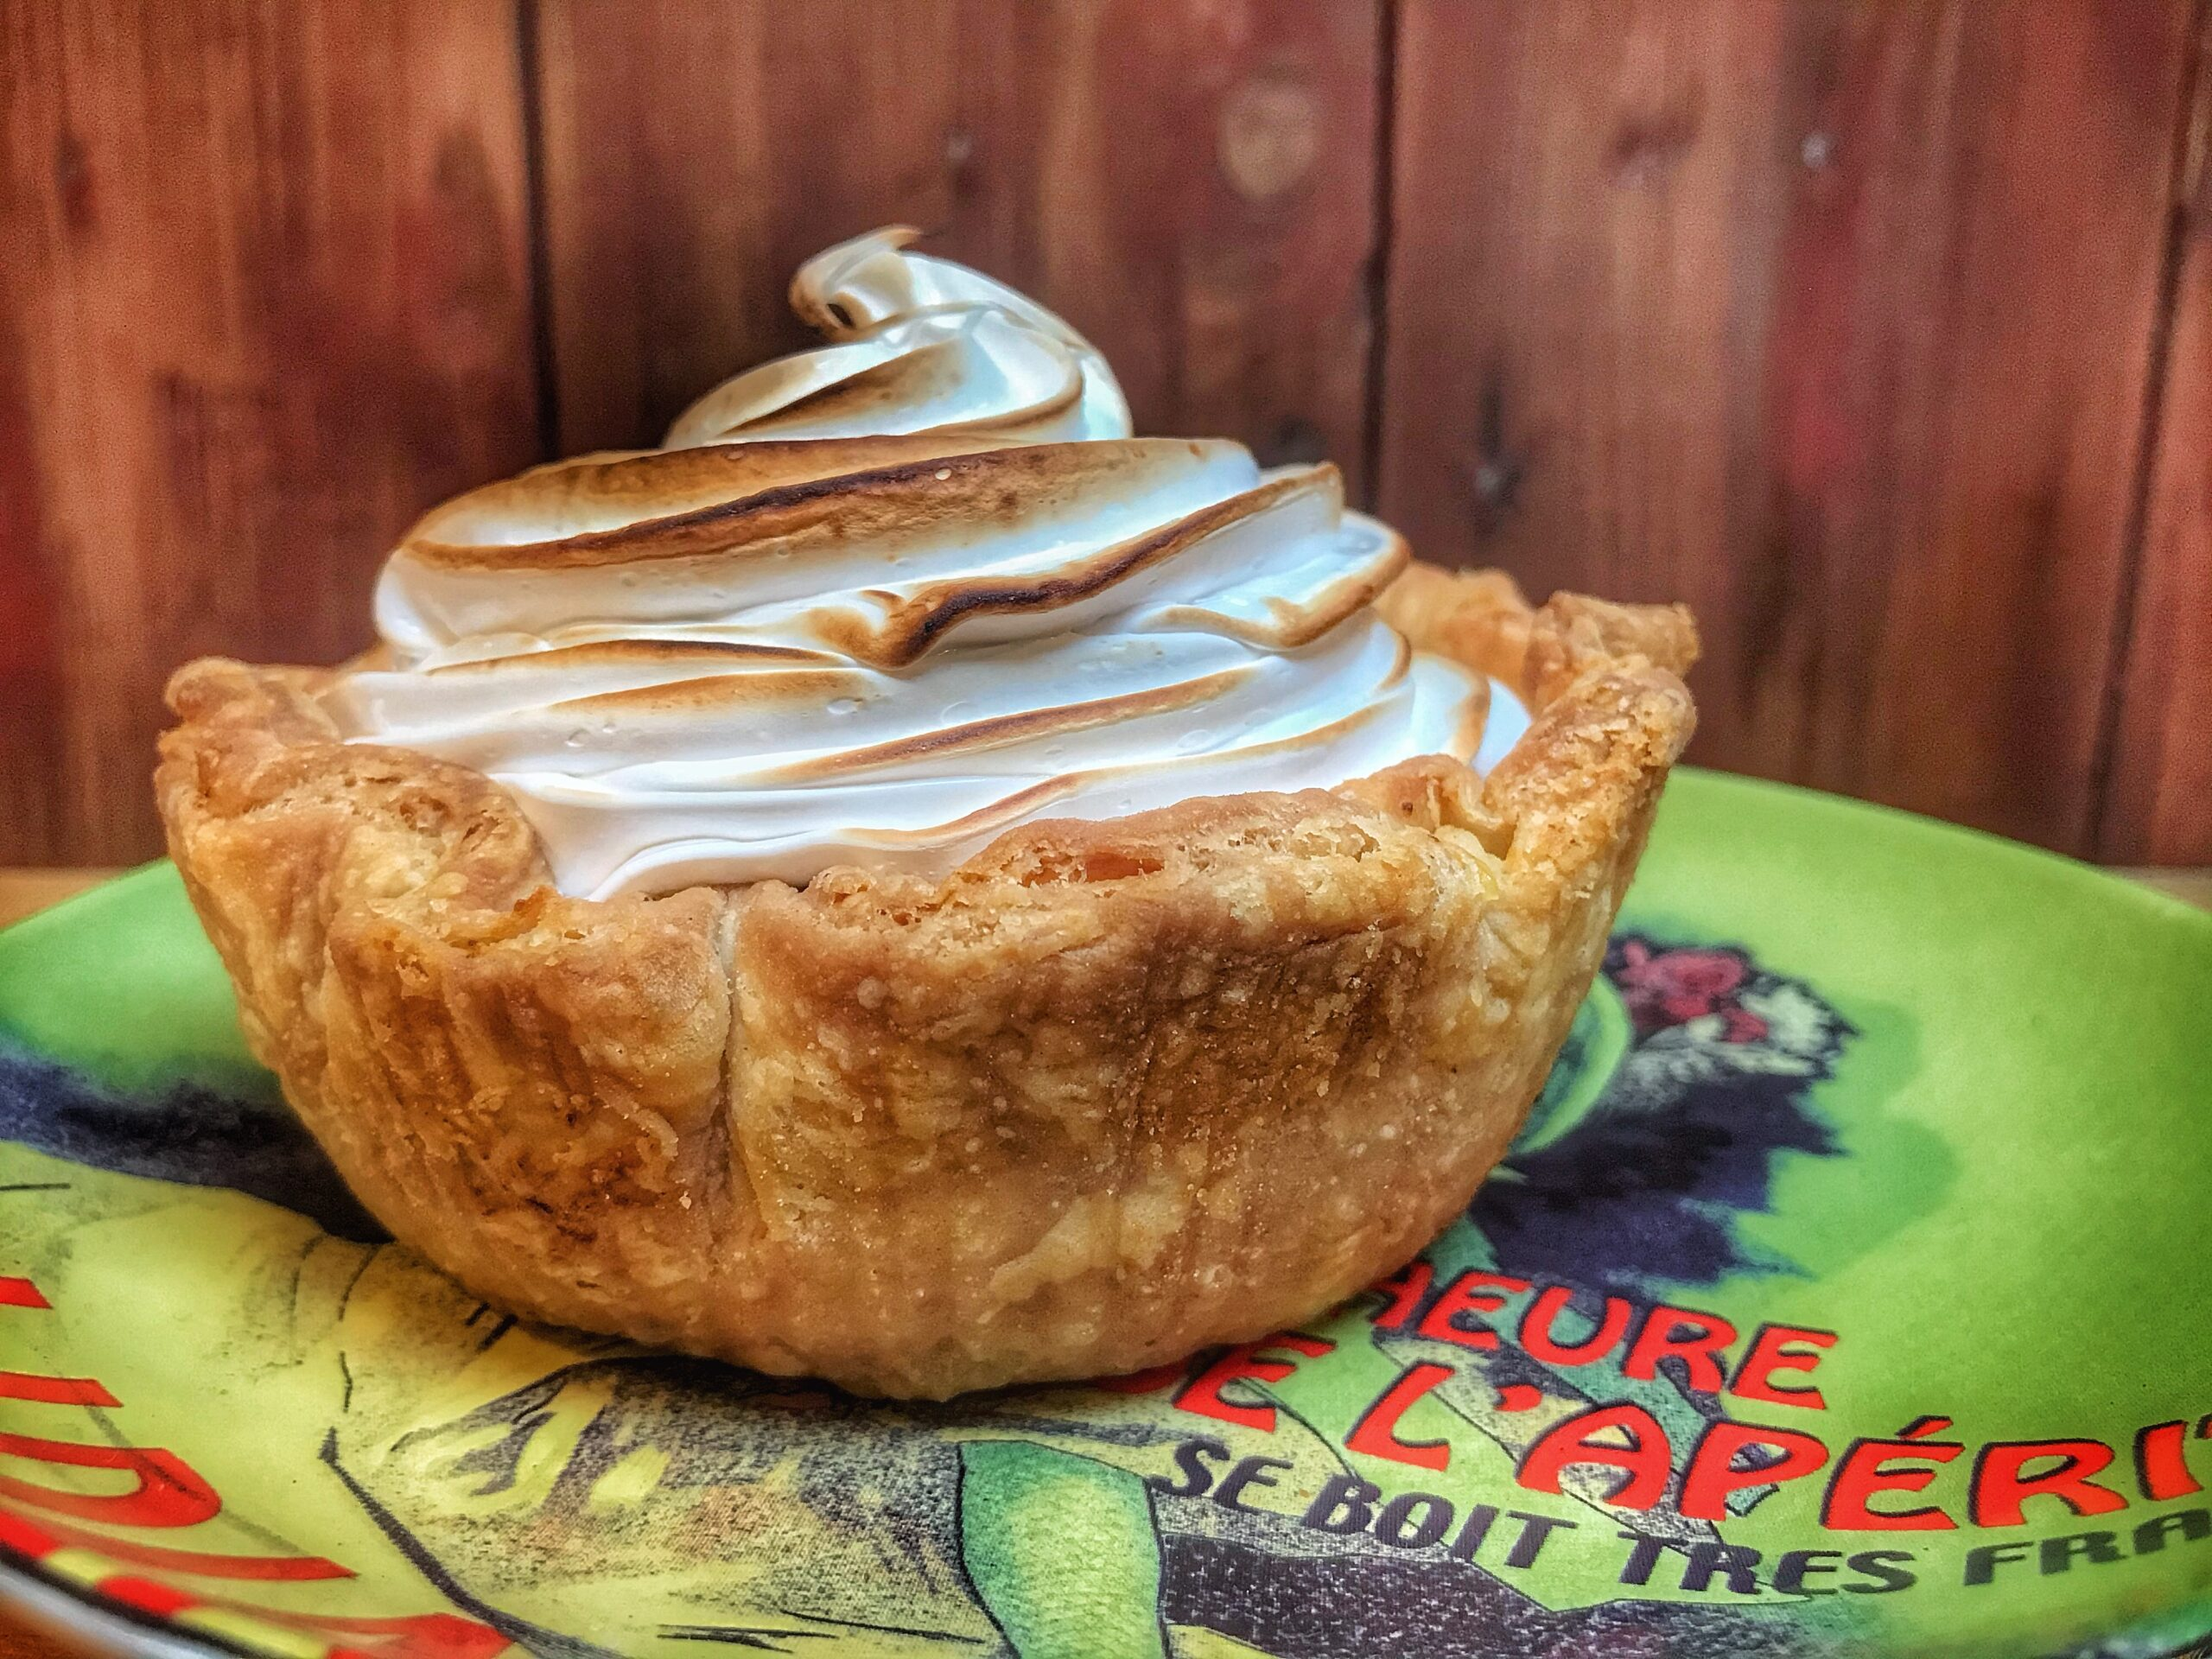 Lemon Meringue Slump Pie